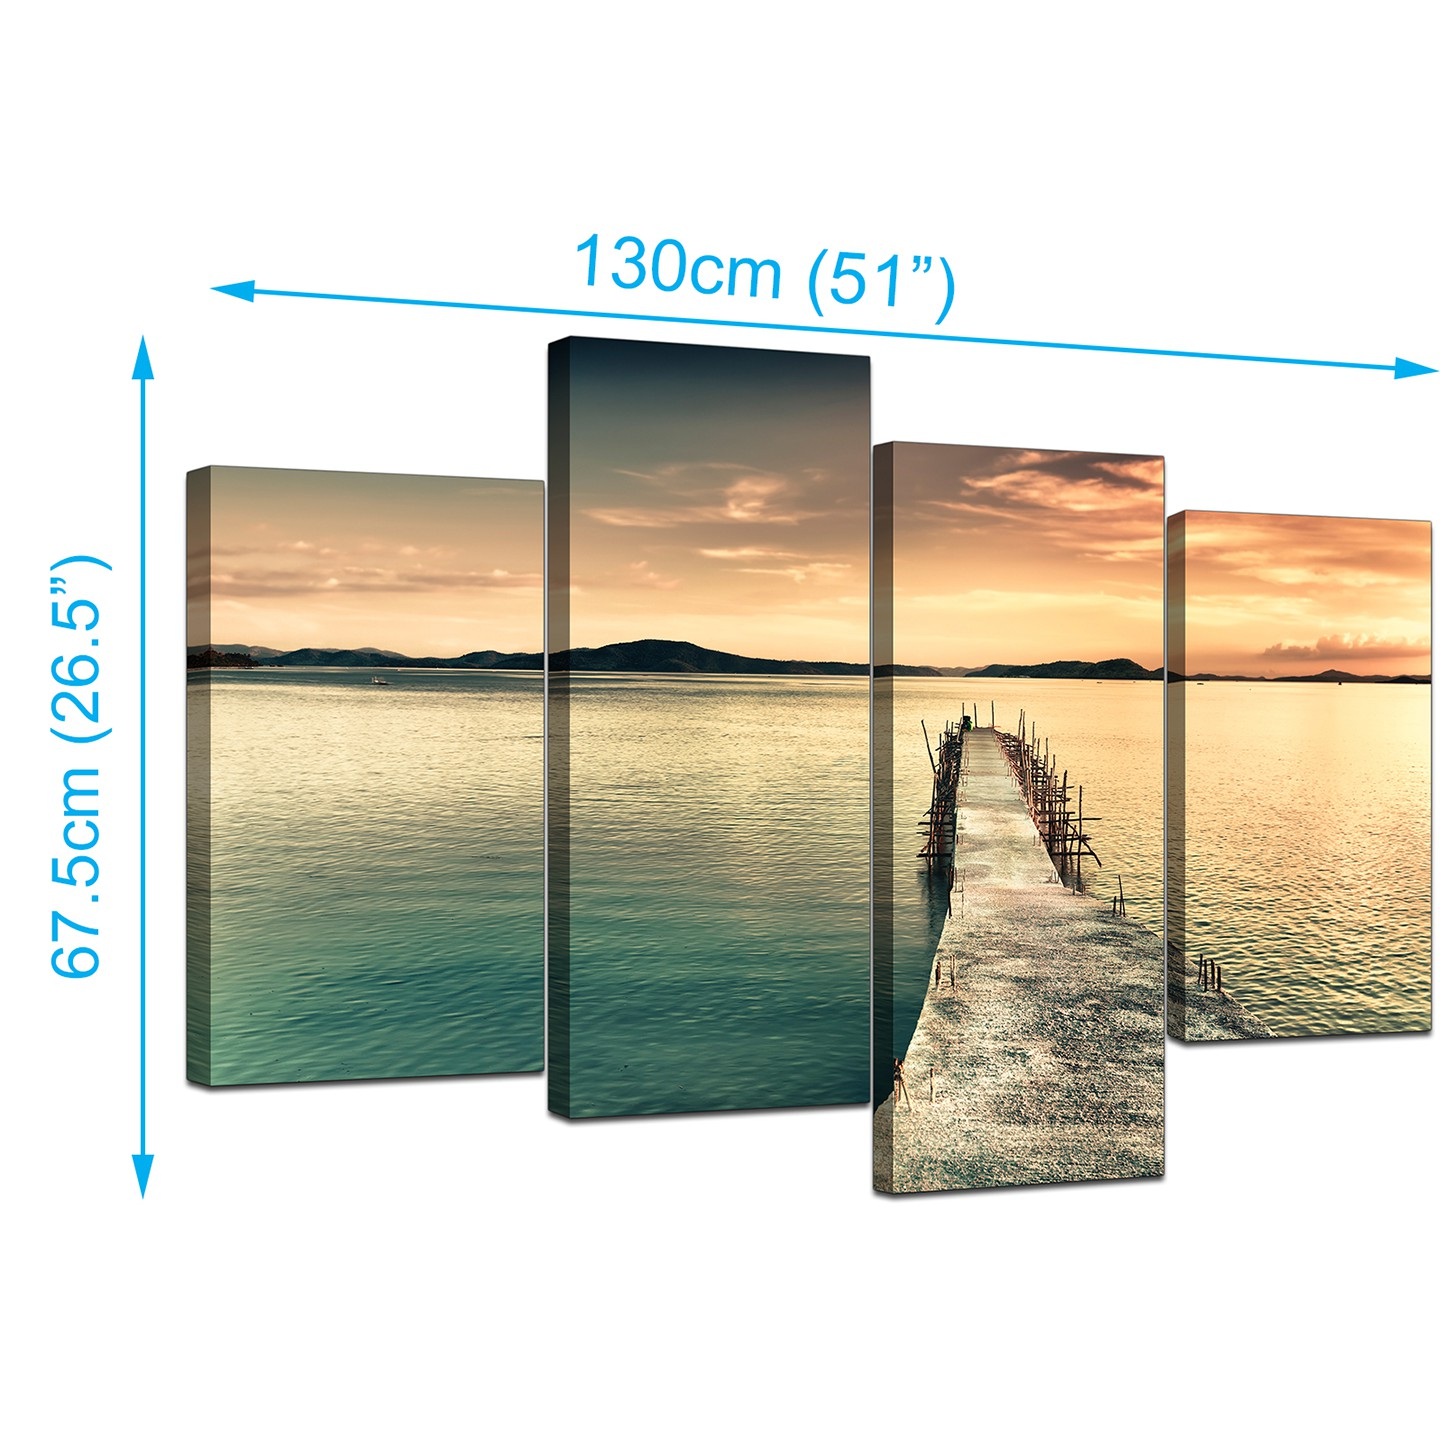 Canvas Prints of a Lake for your Bathroom - Set of 4